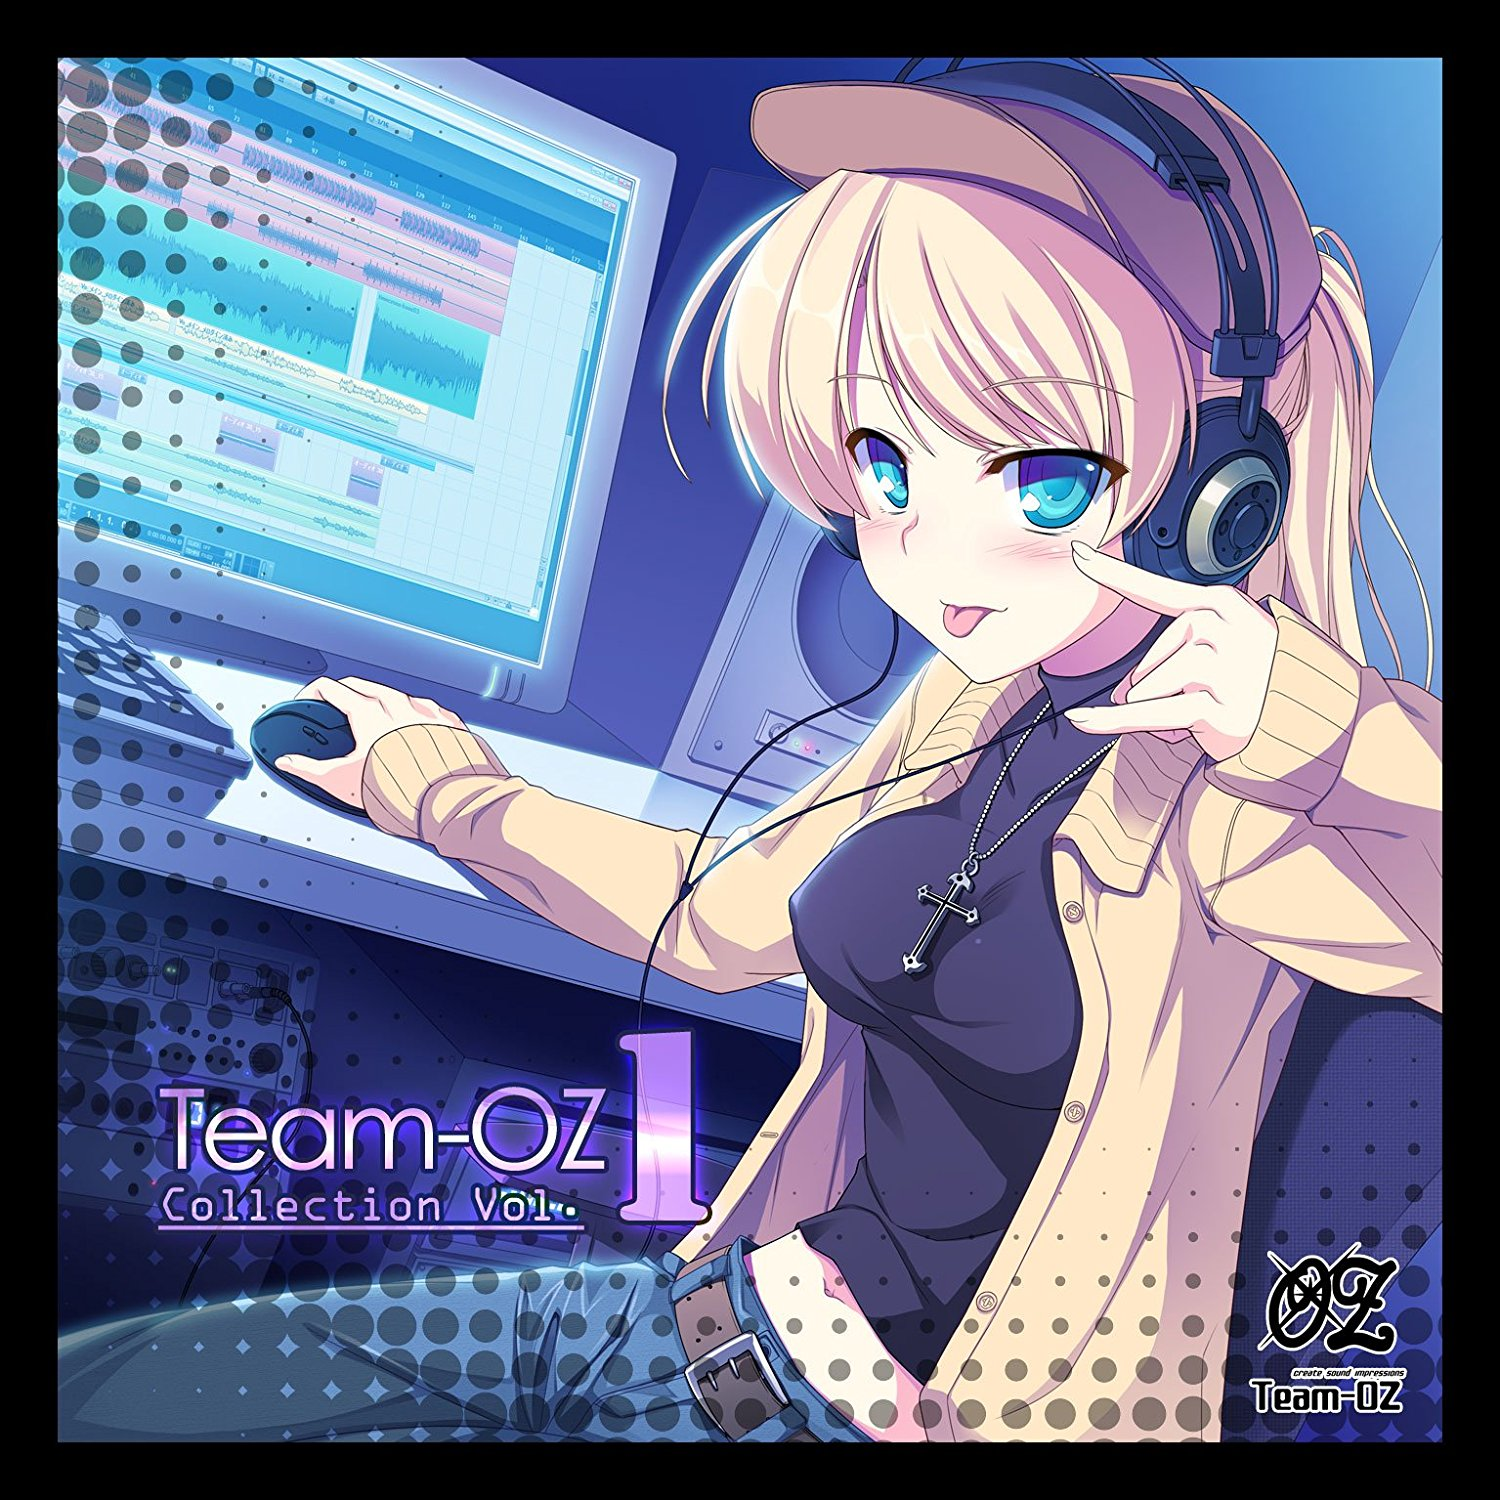 Team-OZ Collection Vol.01